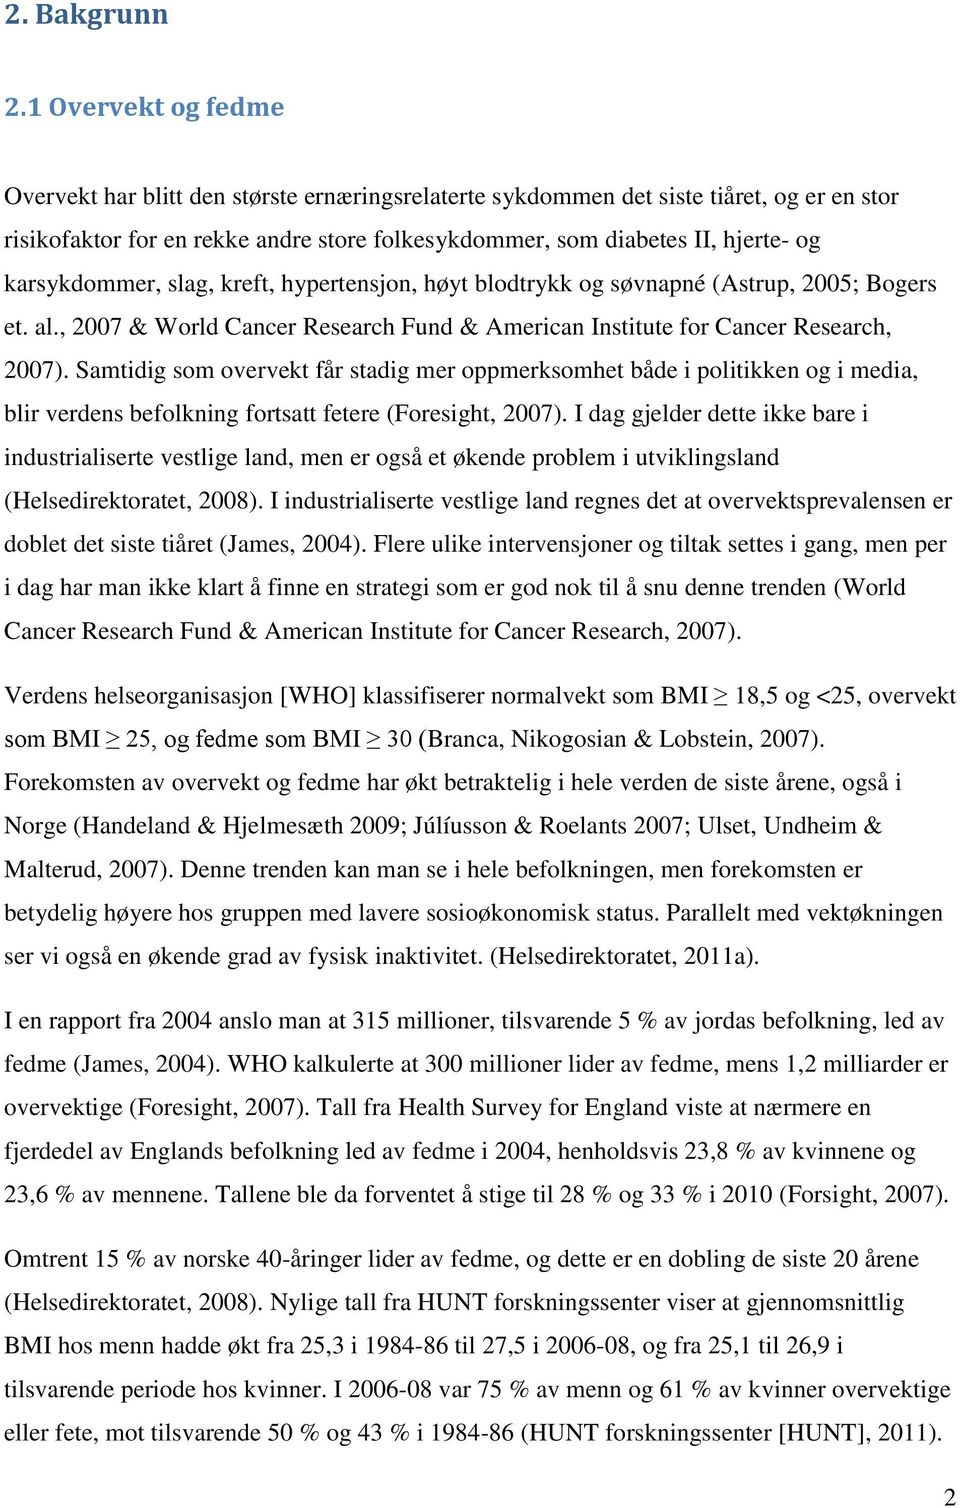 karsykdommer, slag, kreft, hypertensjon, høyt blodtrykk og søvnapné (Astrup, 2005; Bogers et. al., 2007 & World Cancer Research Fund & American Institute for Cancer Research, 2007).